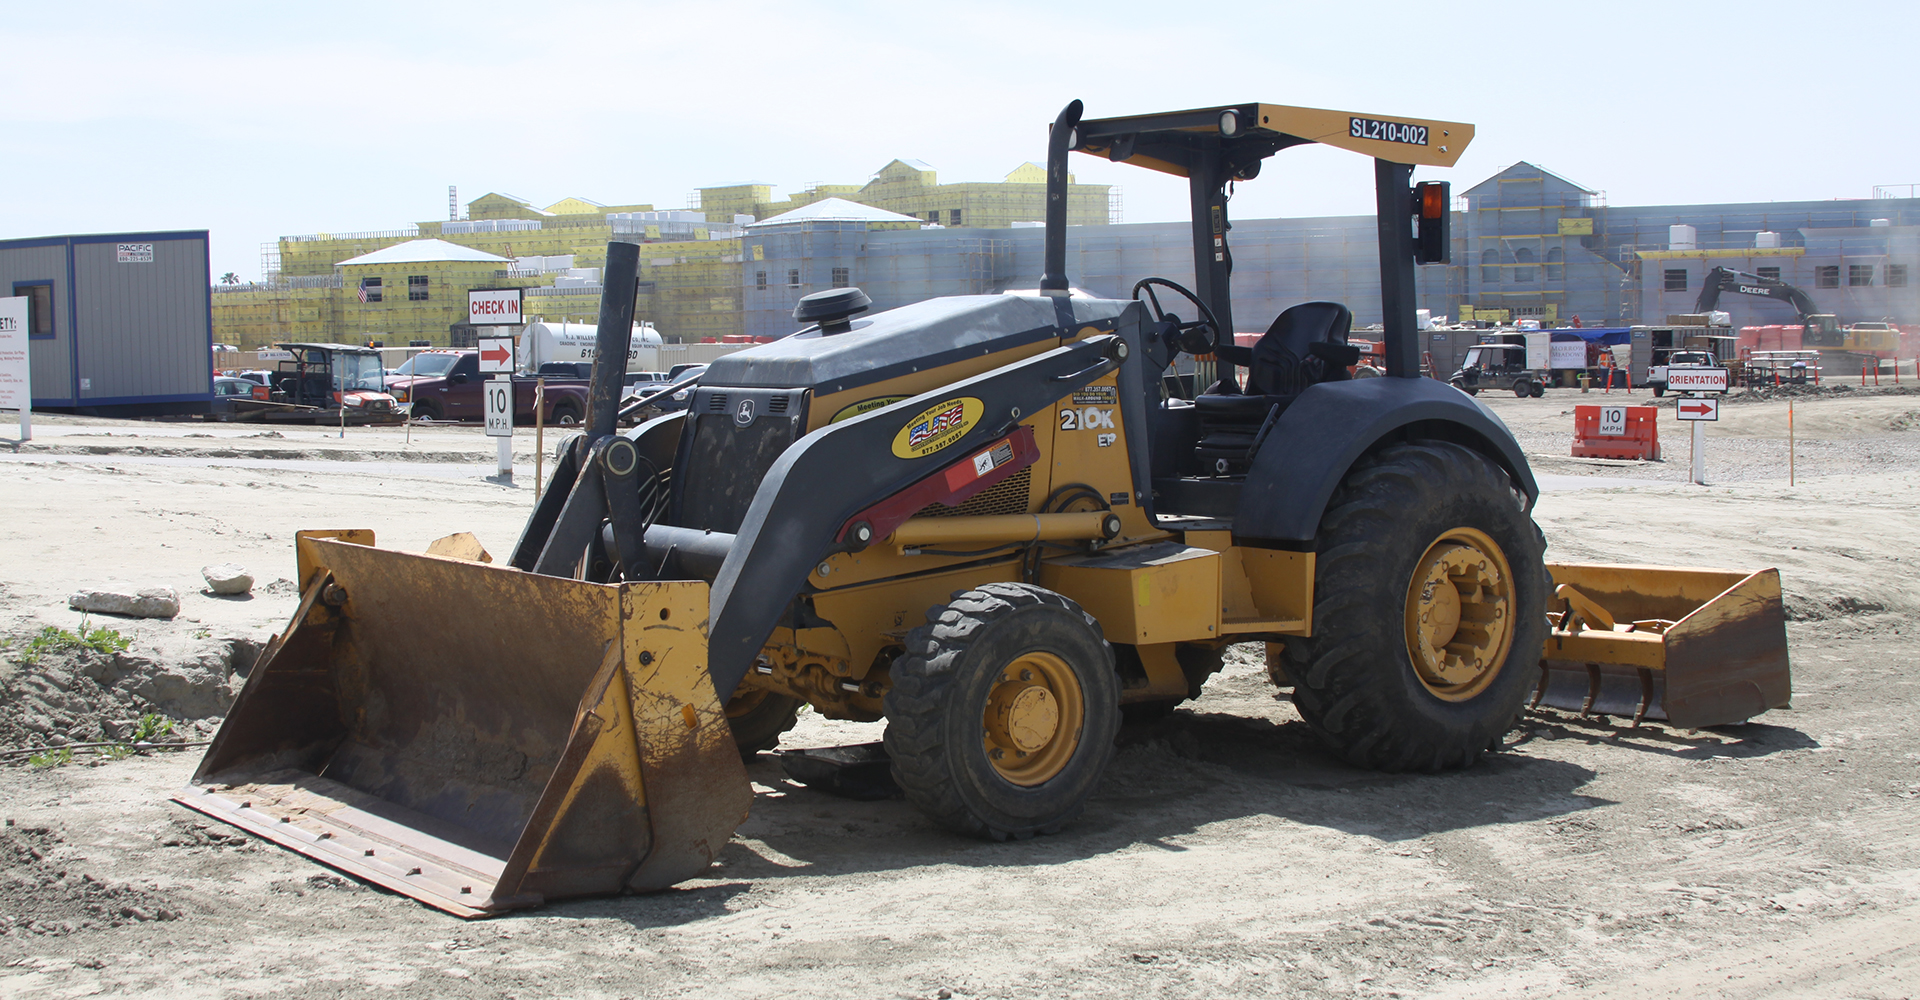 Rent Construction Equipment in Artesia, Long Beach, Anaheim, San Diego, Palm Springs California